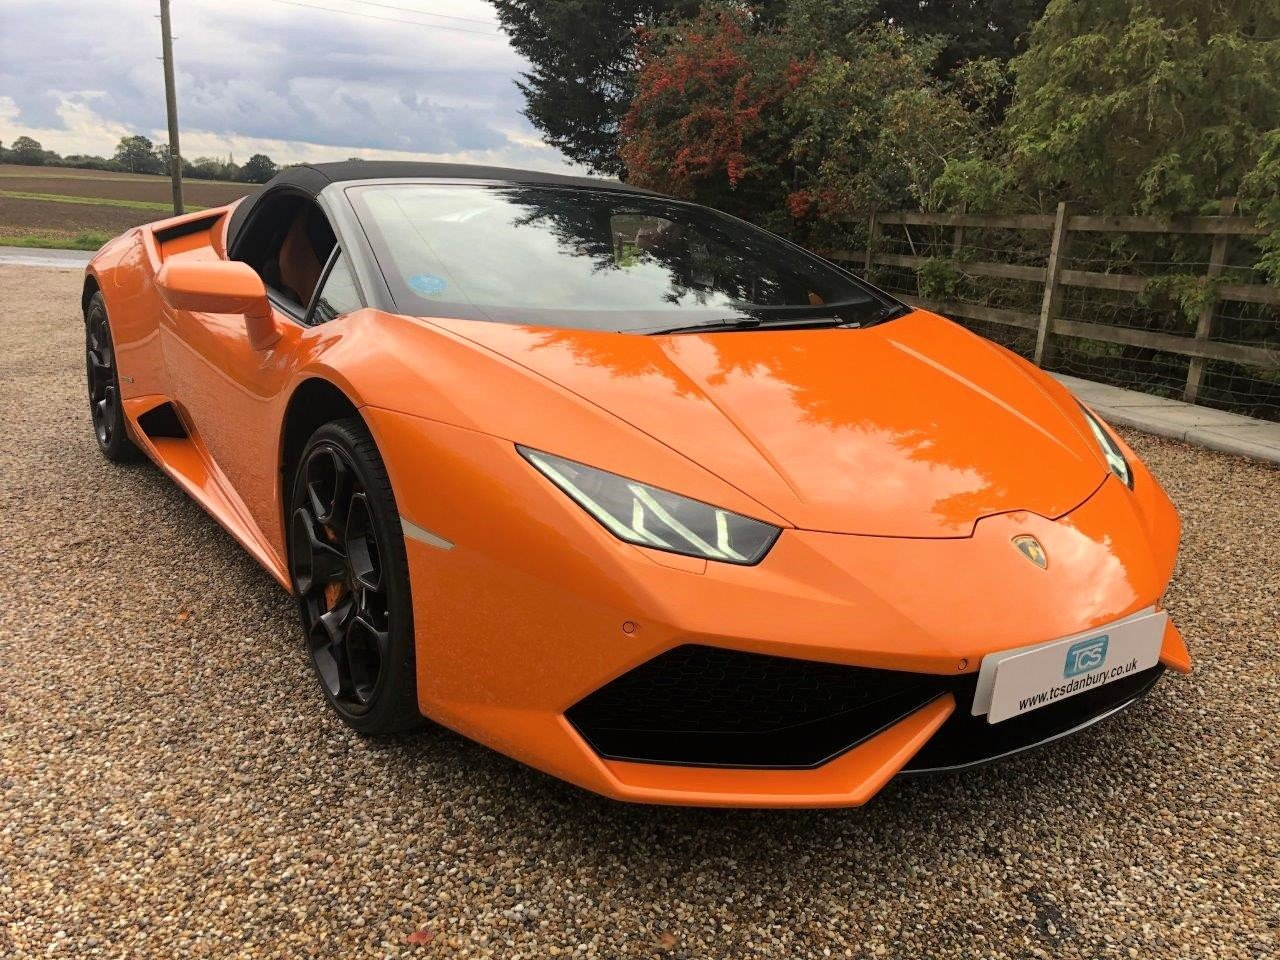 2017 Lamborghini Huracan LP610-4 AWD Spyder  For Sale (picture 1 of 6)